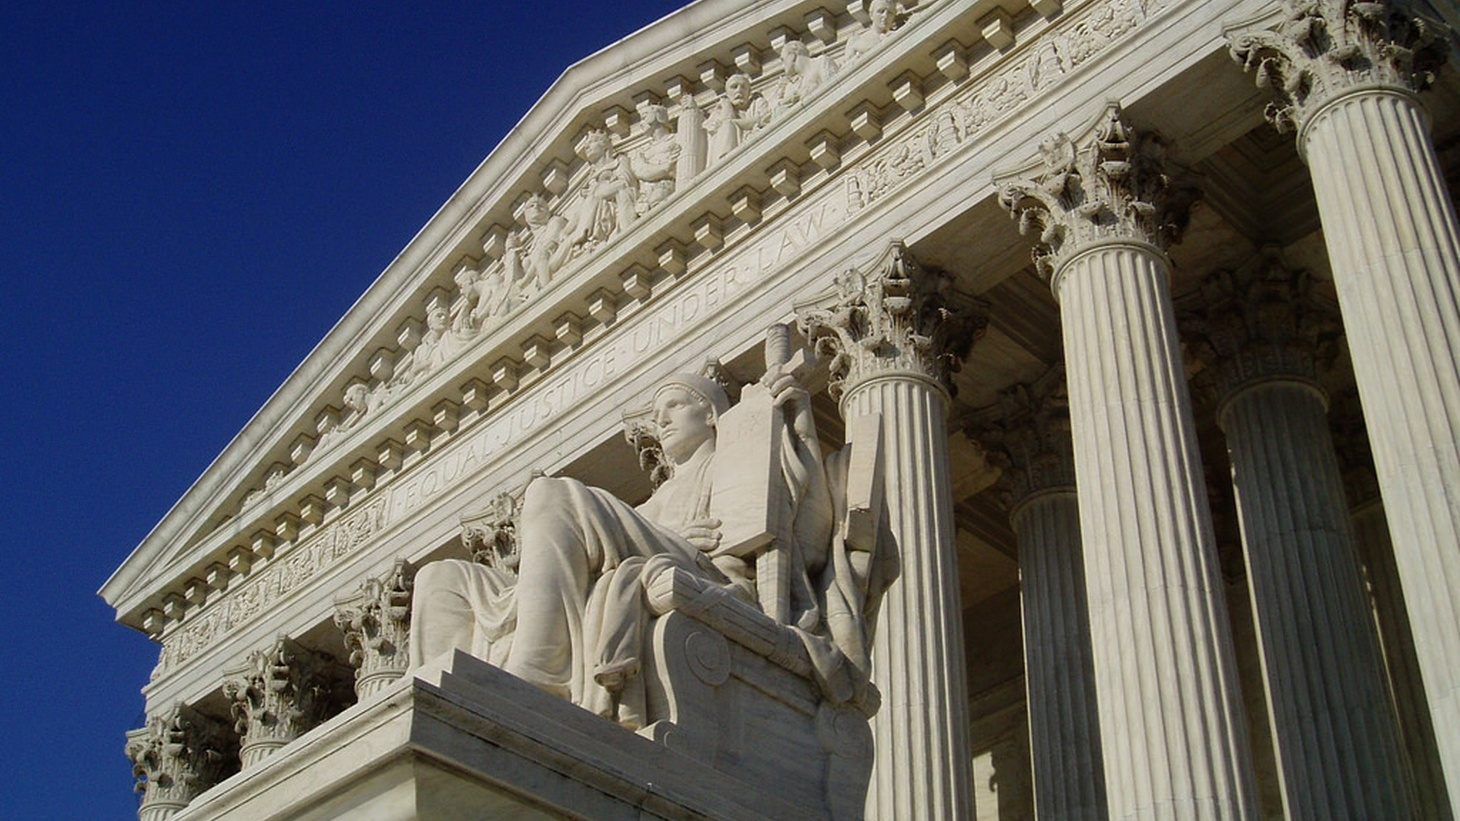 Since the death of Antonin Scalia, Congress has left the US Supreme Court with four liberals, four conservatives and the prospect of deadlock on cases of major importance to millions of people. We look at what to expect from decisions expected this week.